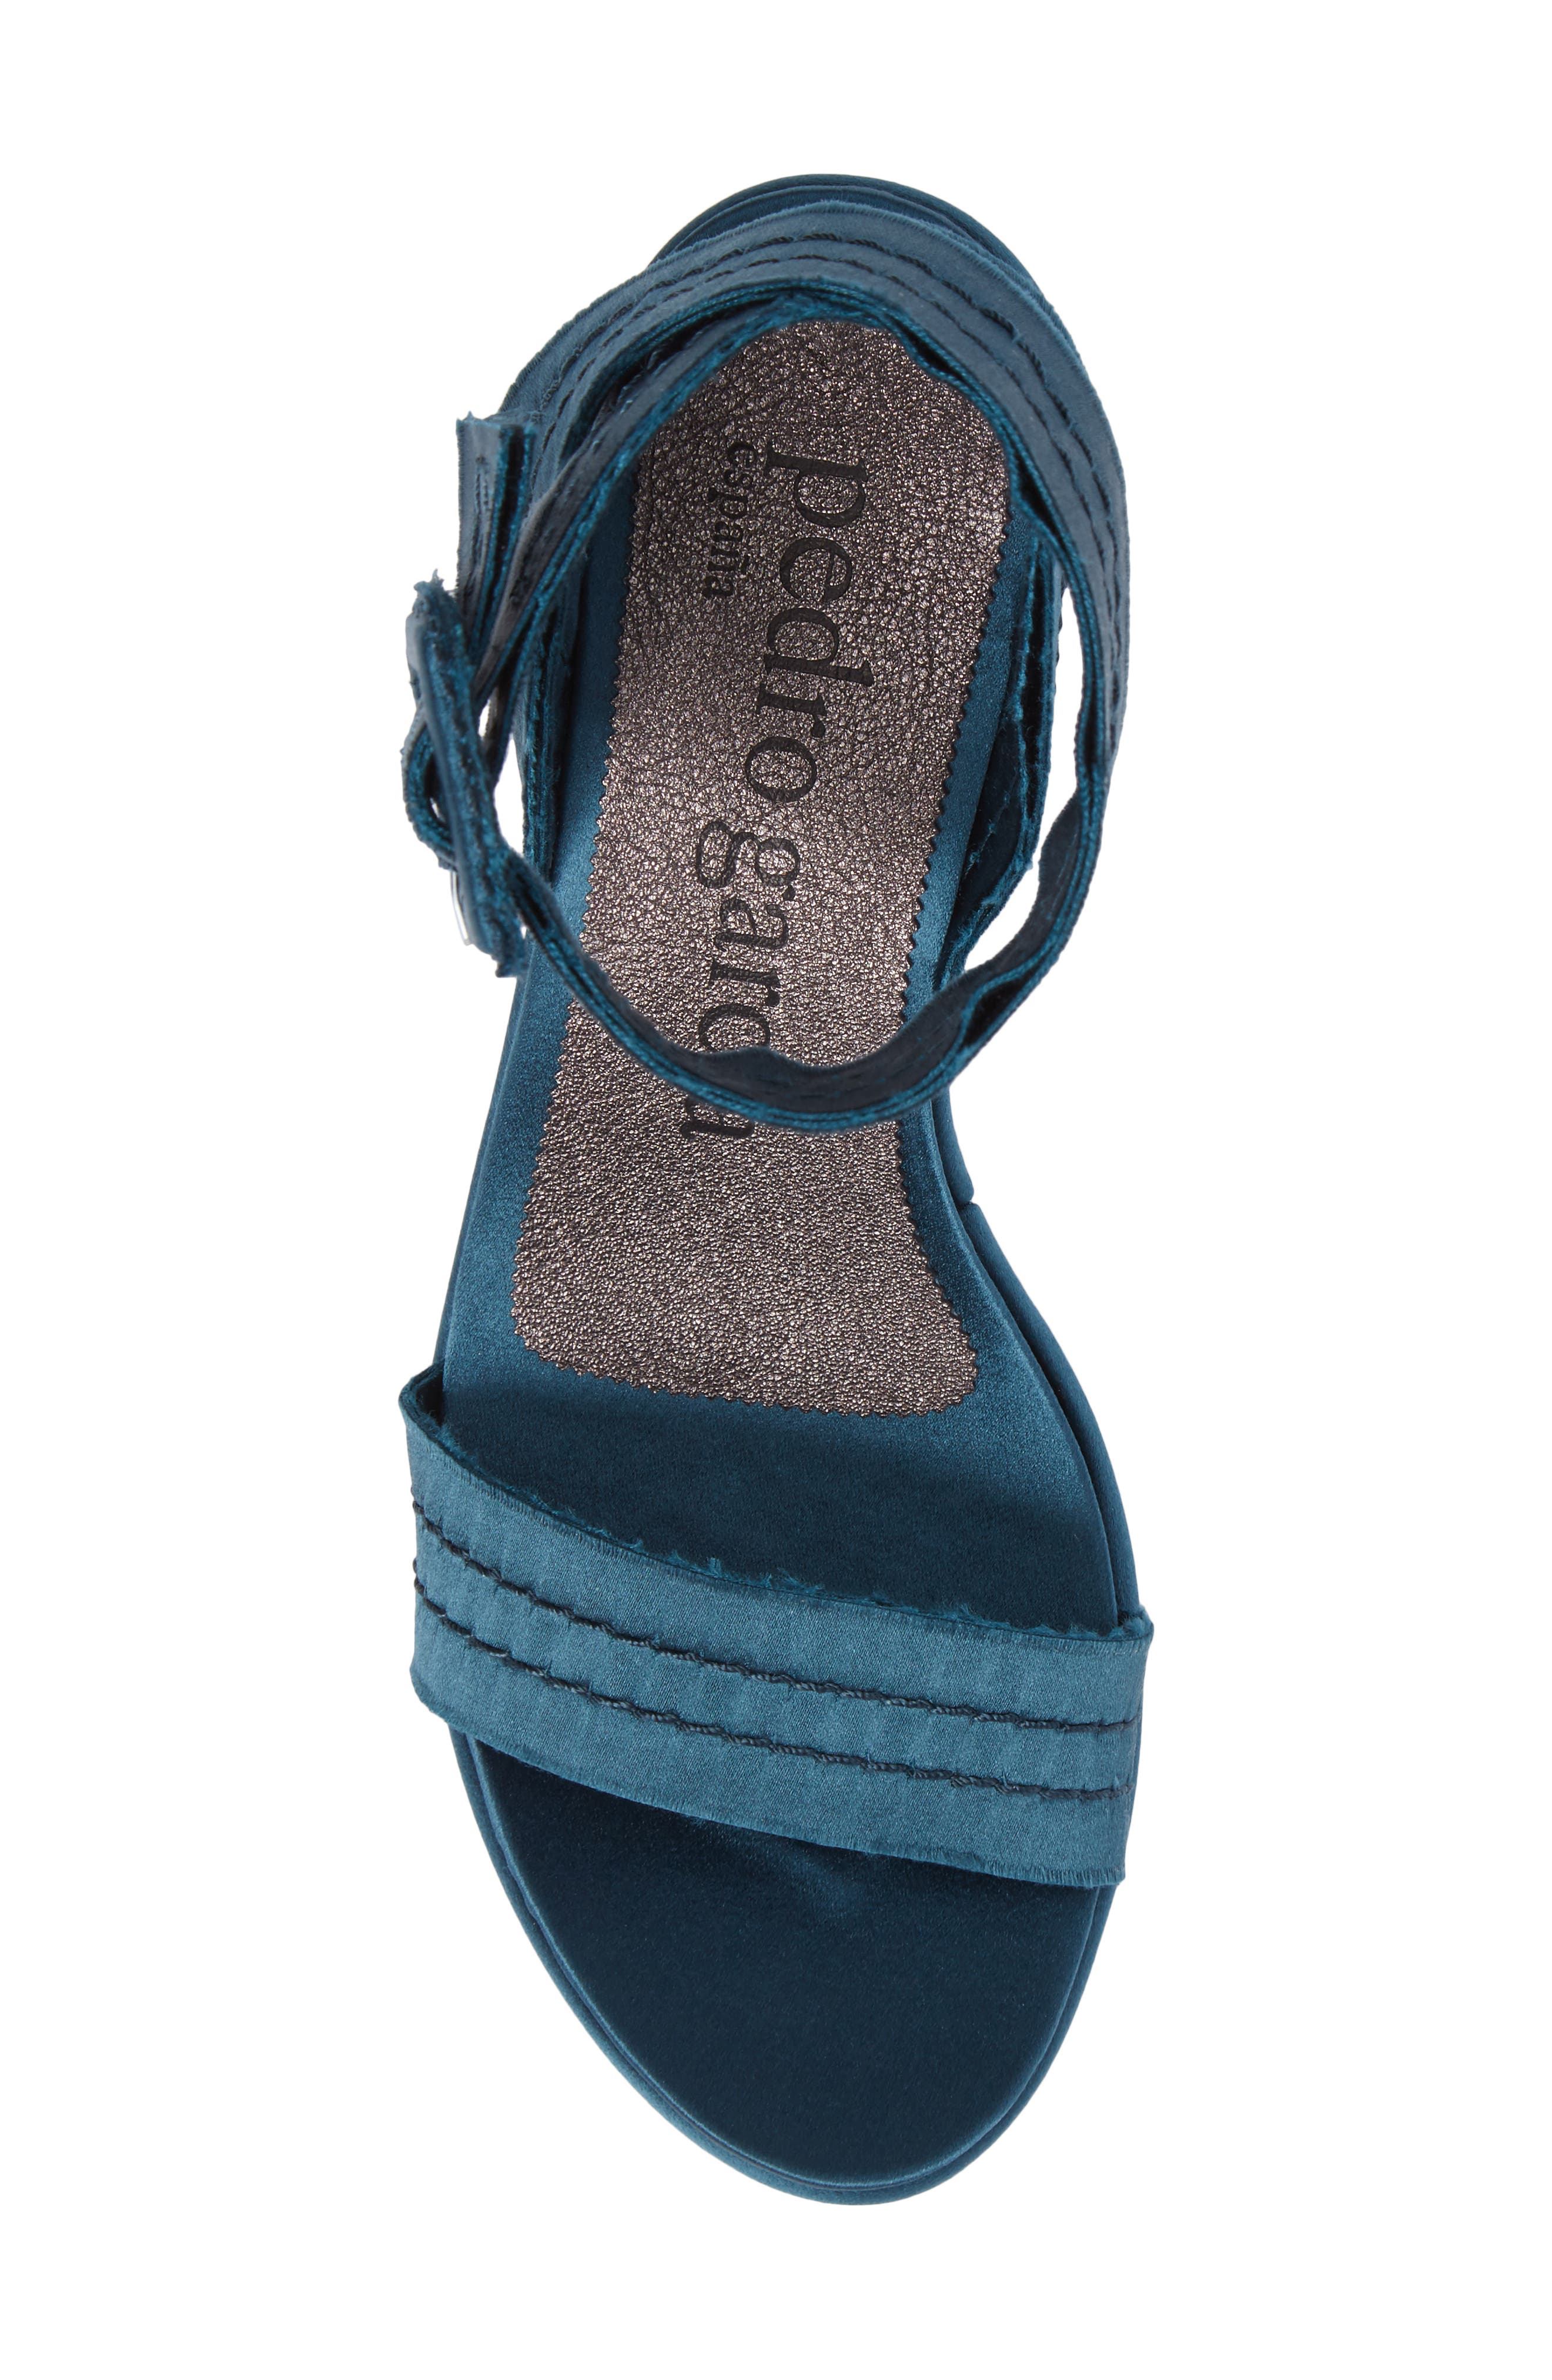 Davida Platform Sandal,                             Alternate thumbnail 5, color,                             400